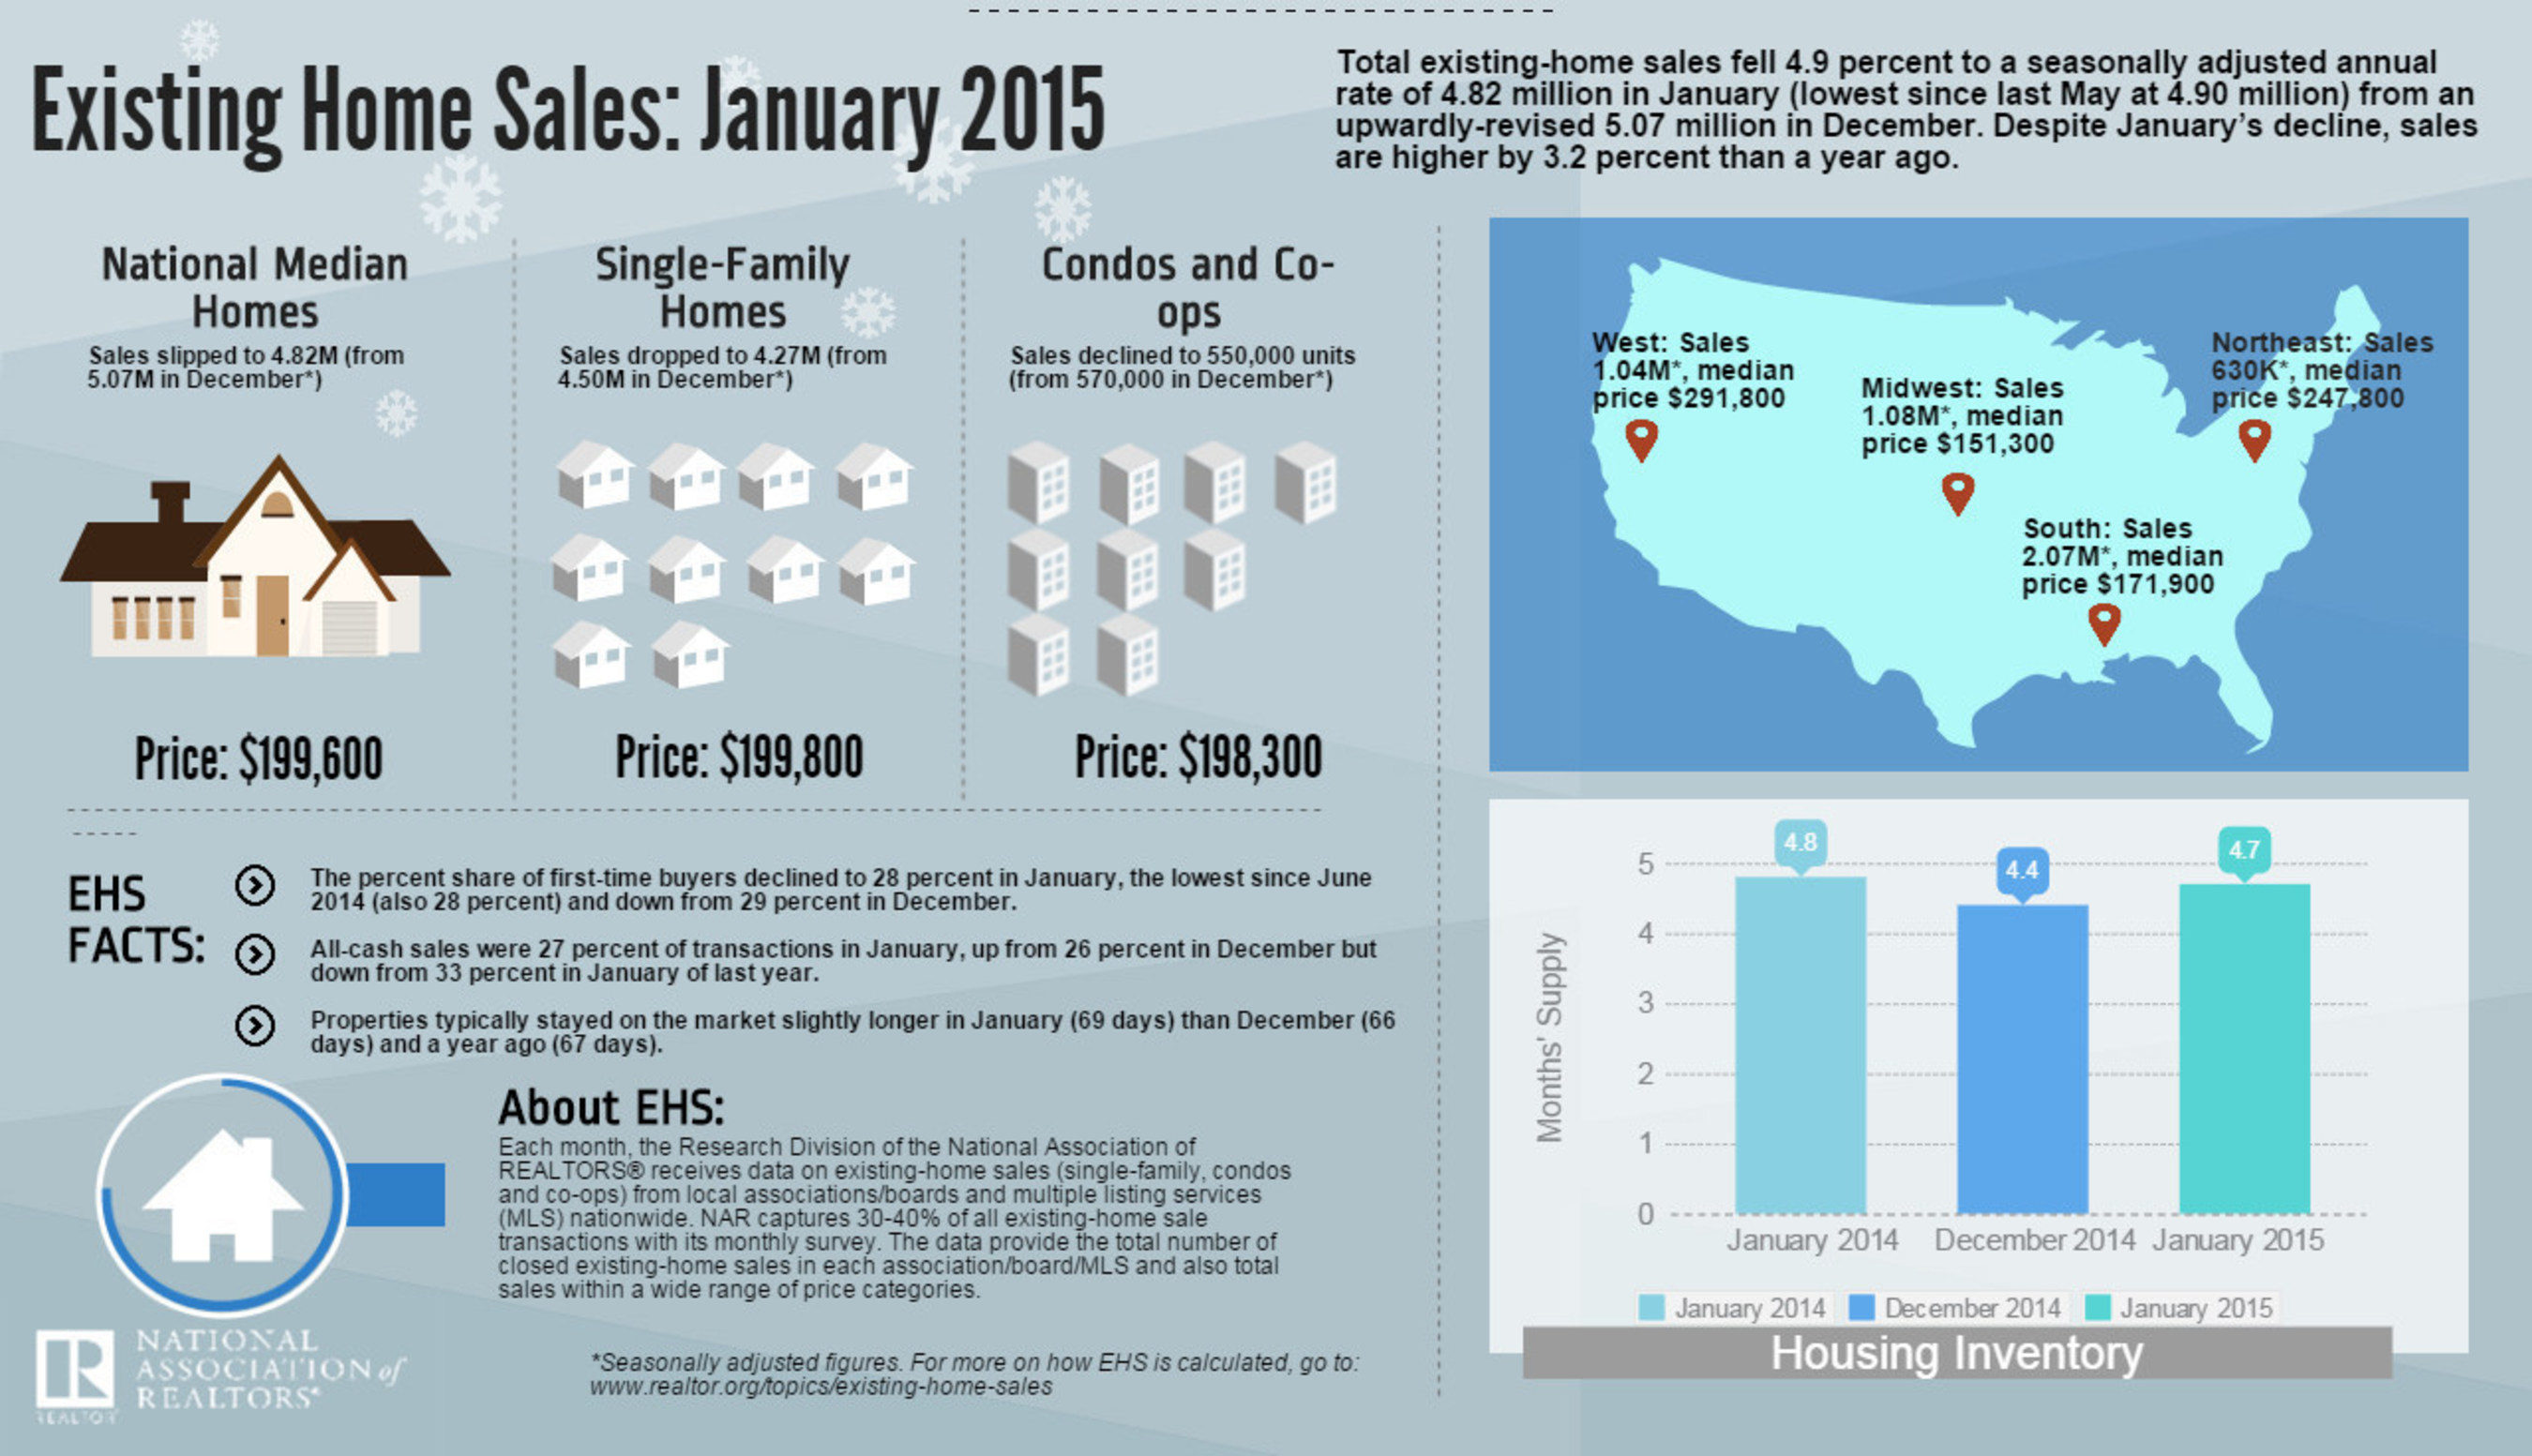 Existing-Home Sales Cool in January